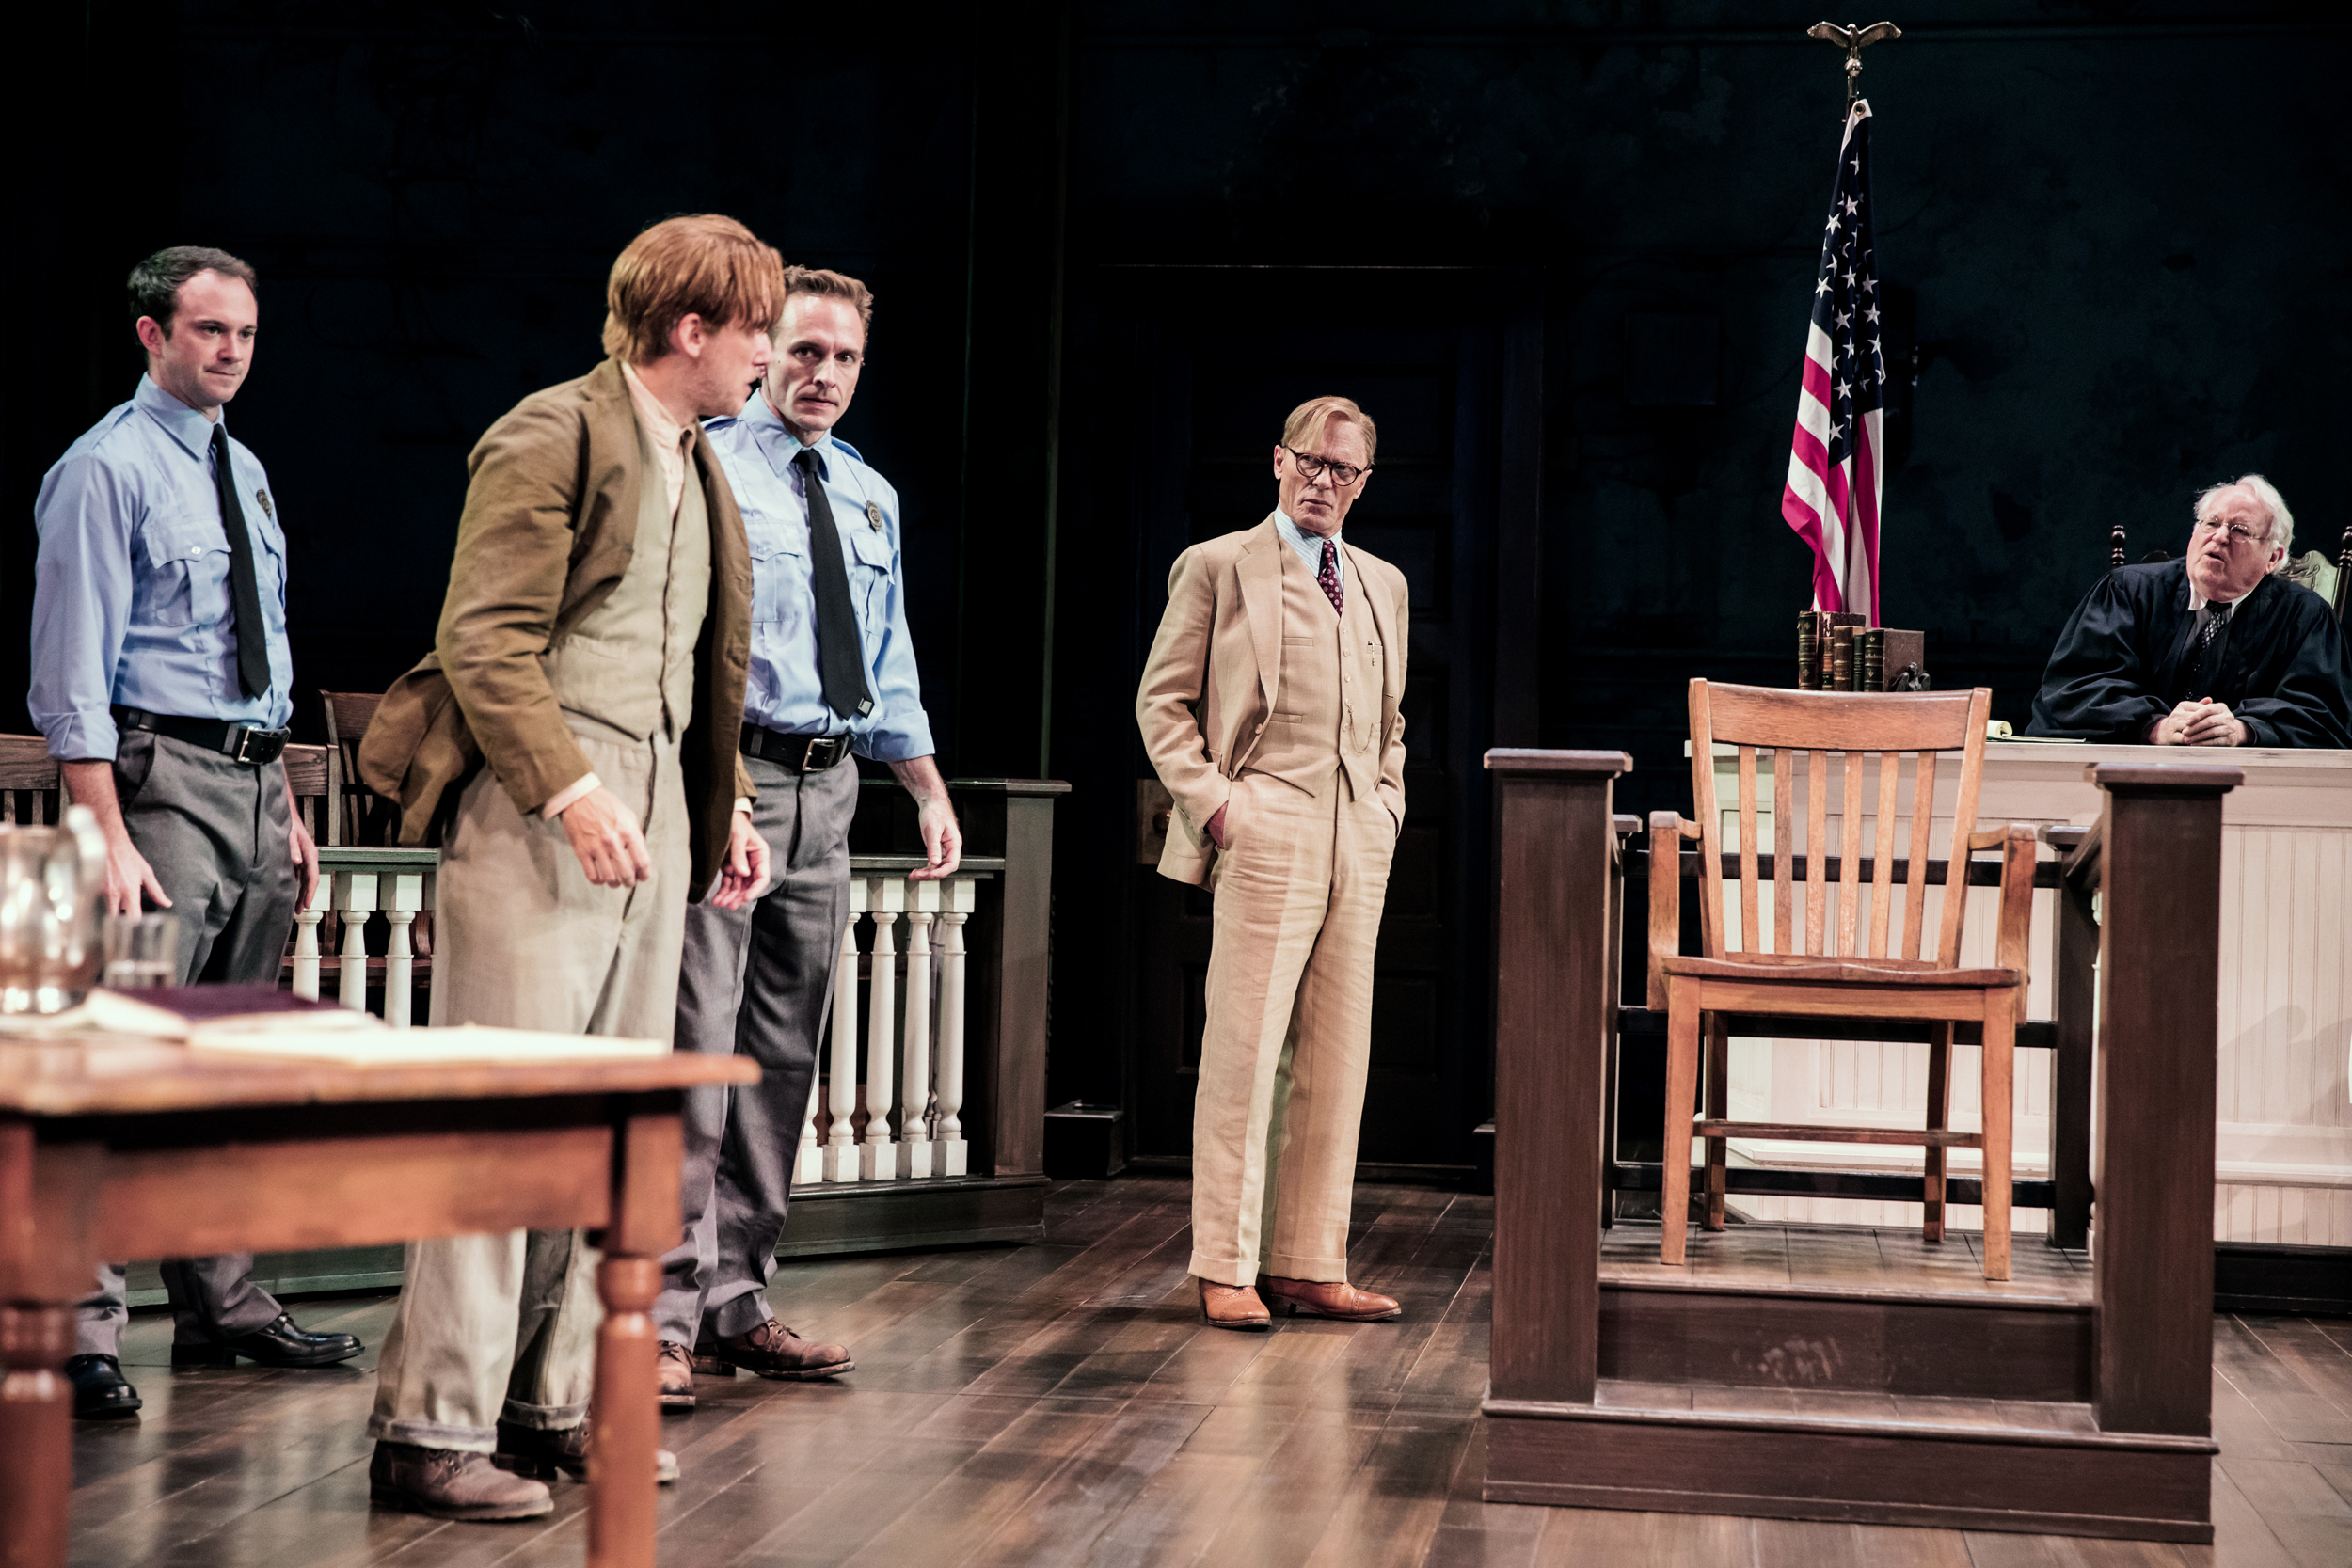 To Kill a Mockingbird' performed free for students at Madison Square Garden